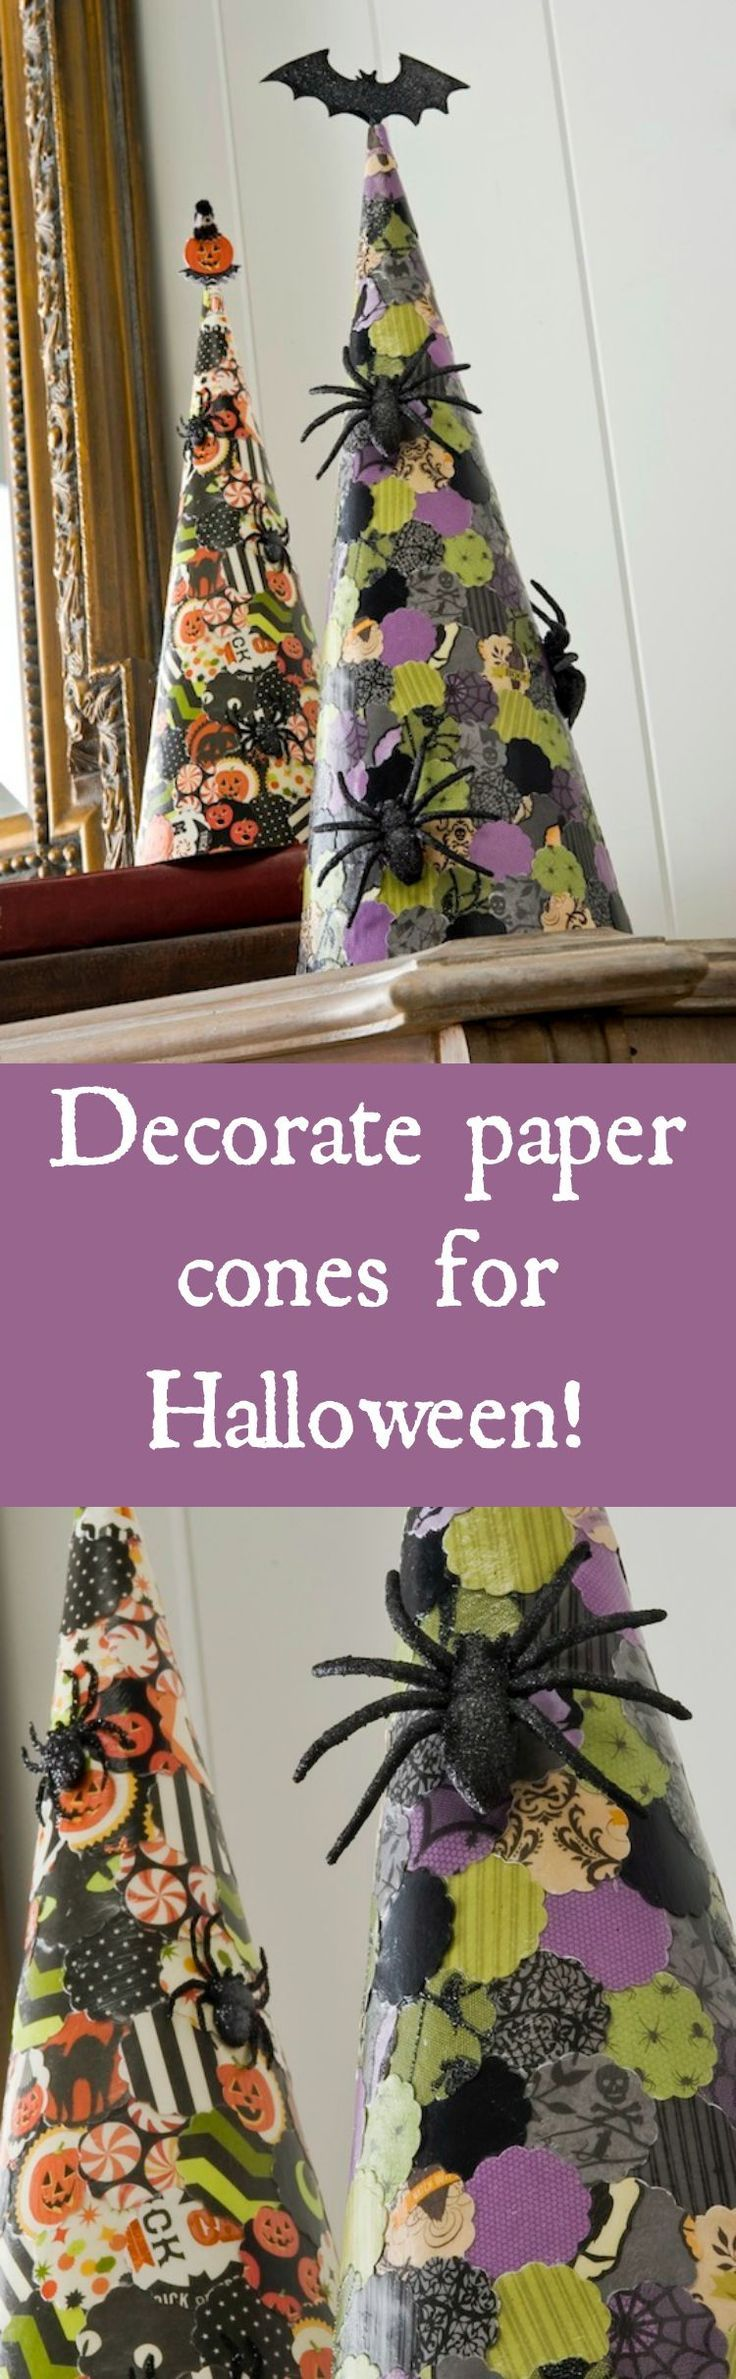 Easy Halloween Decor Paper Spider Cones Mod Podge  Mod Melts - Whimsical Halloween Decorations